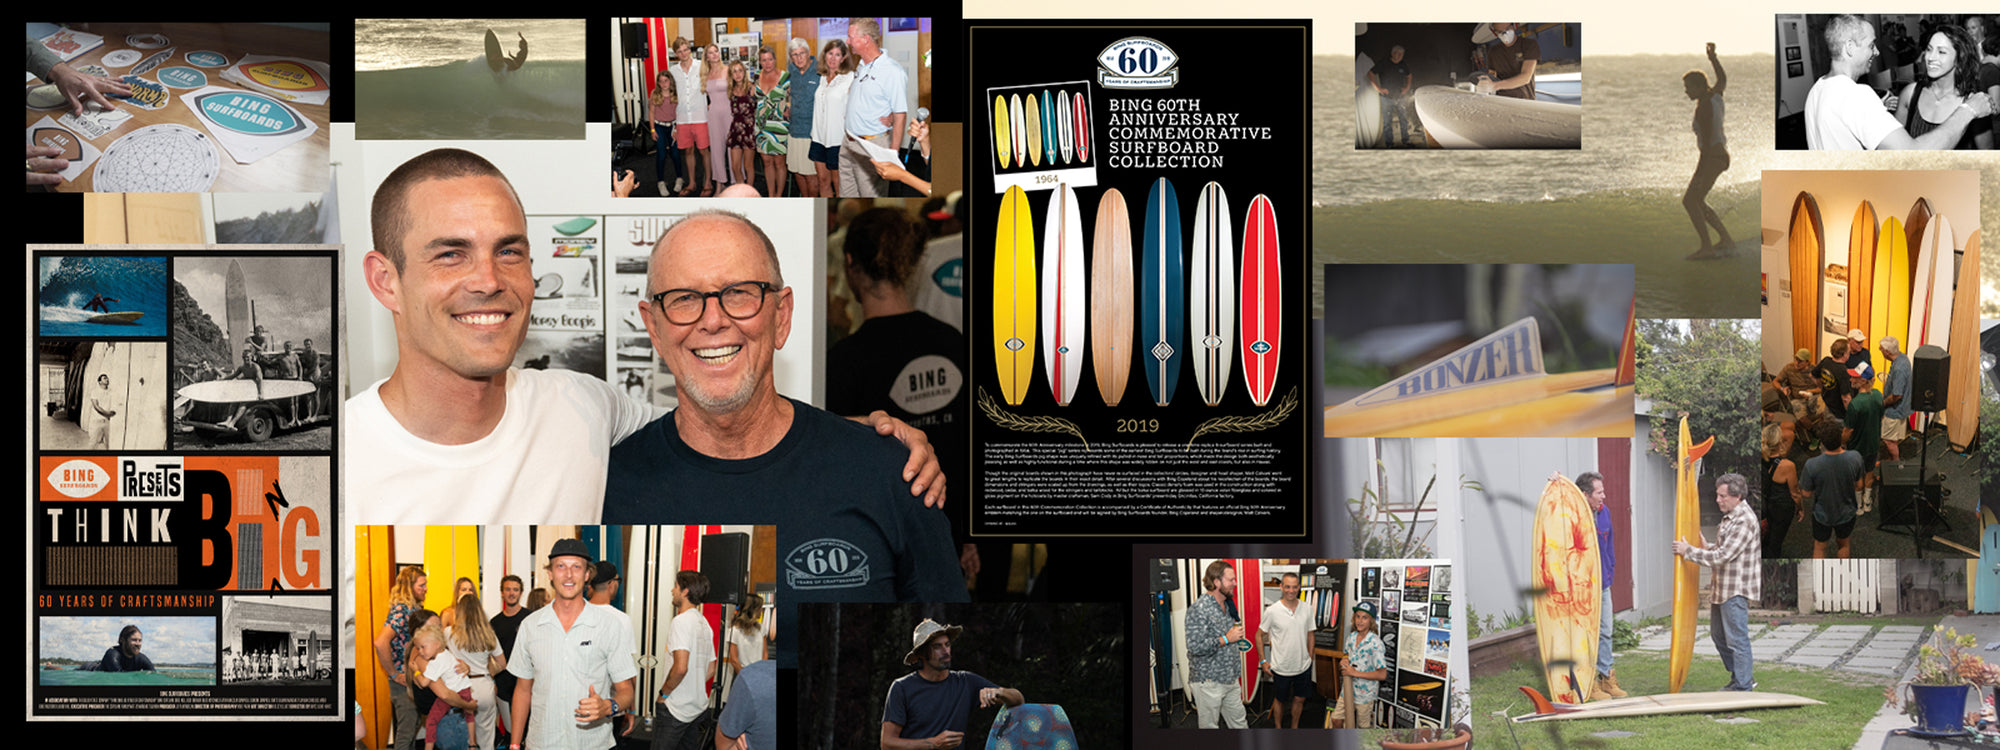 BING 60TH Celebration + Video Premiere of 'THINK BING'  at Surfing Heritage and Culture Center